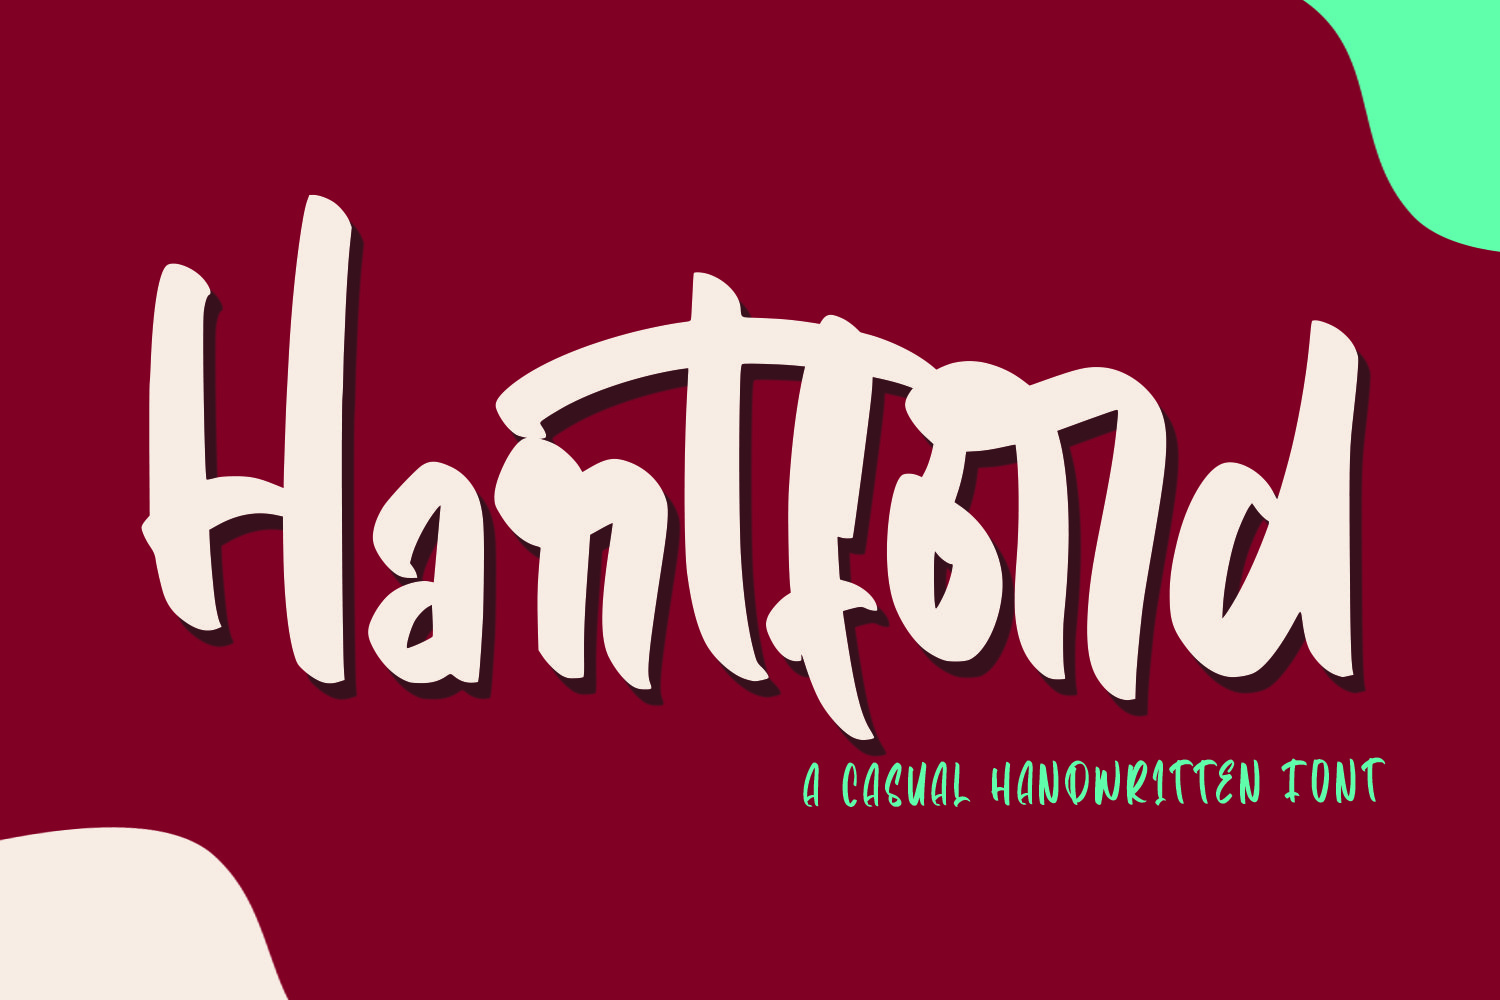 Hartford - Casual Hnadwritten Font example image 1